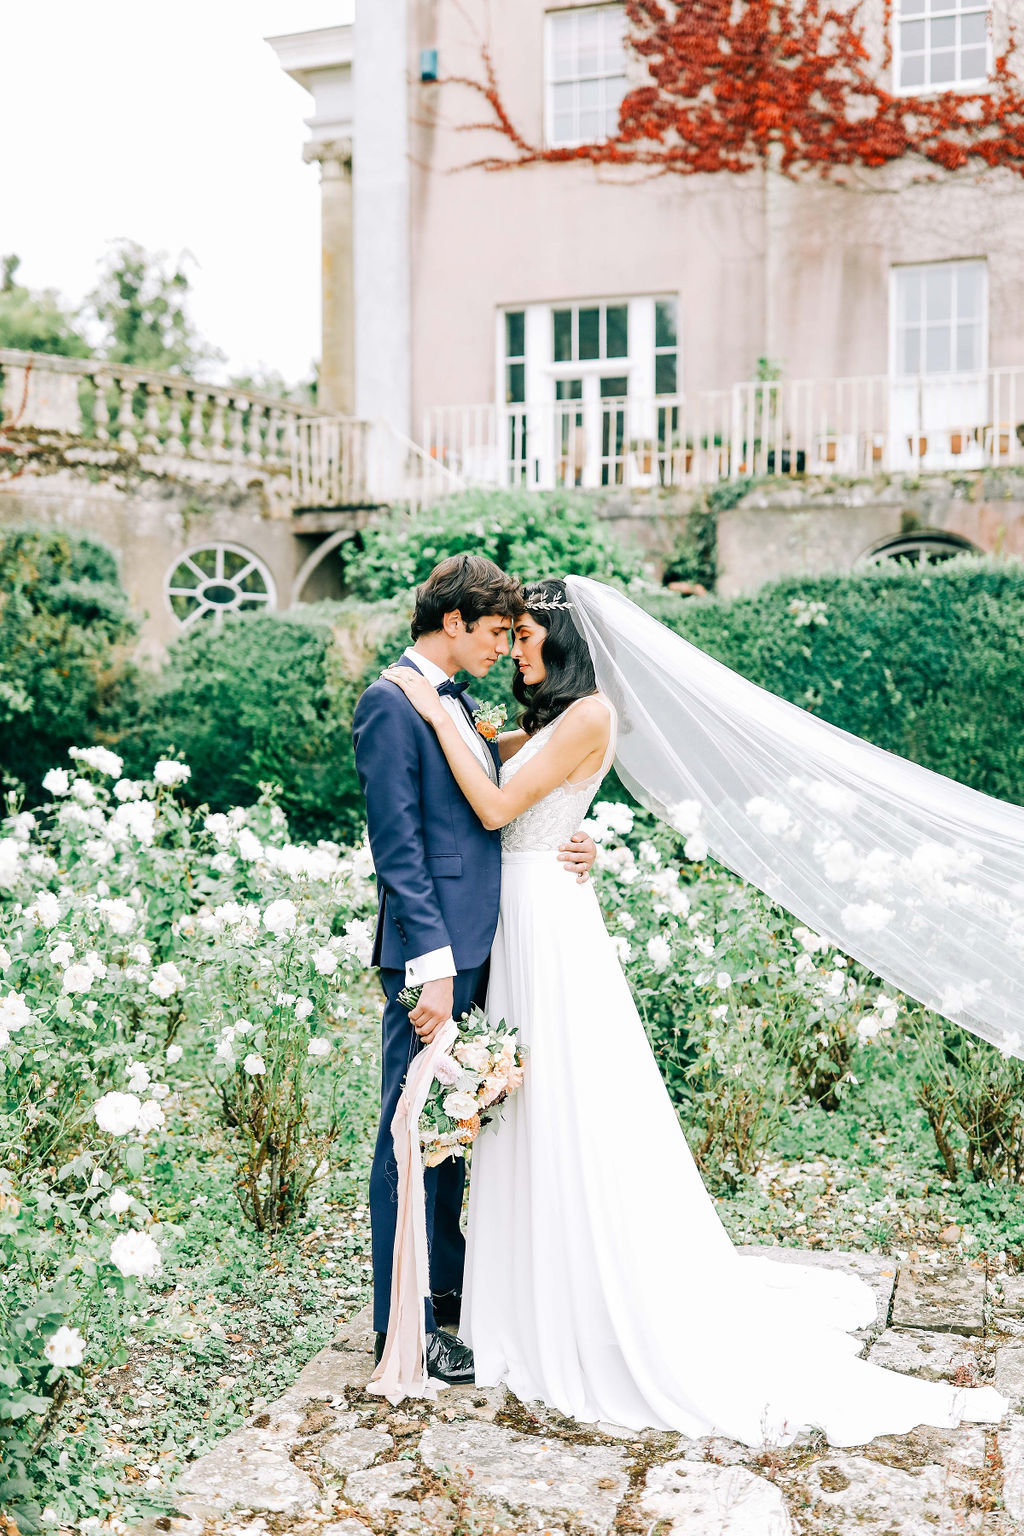 English Country Garden Wedding Inspiration